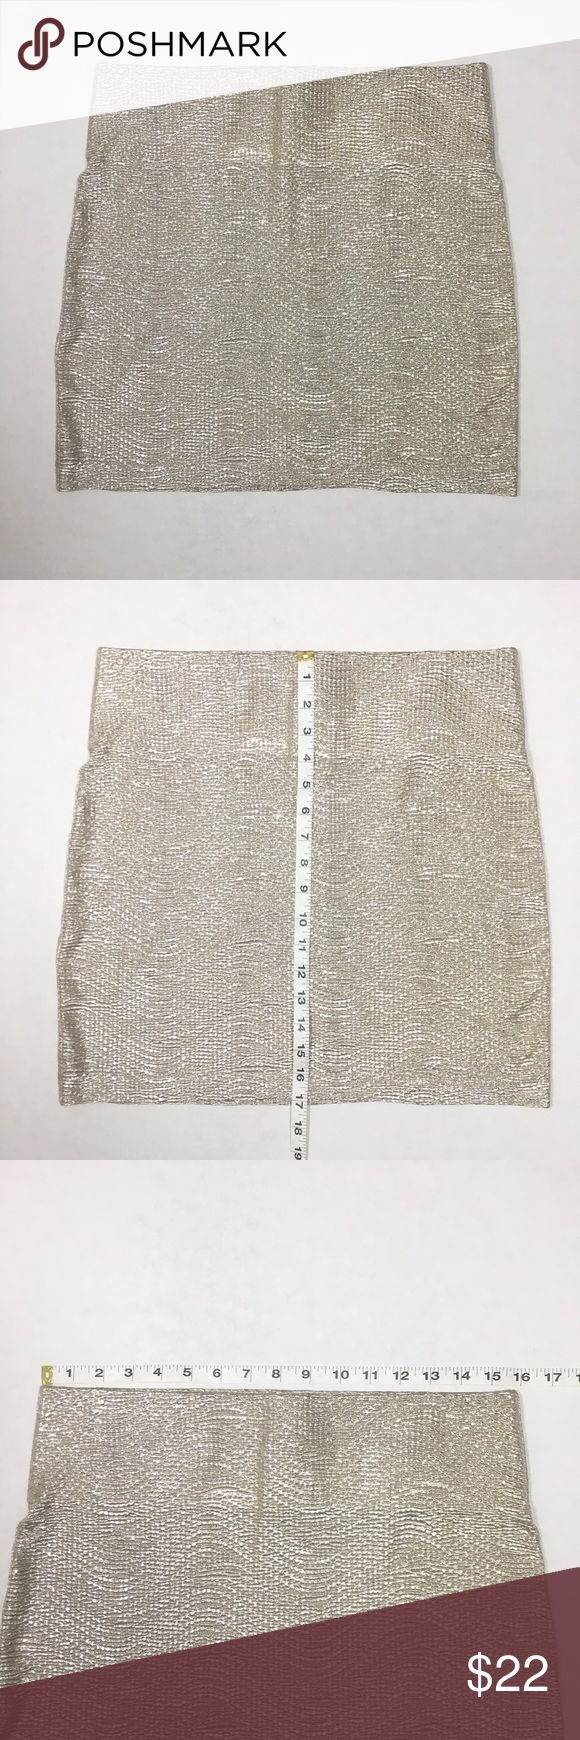 BCBGeneration Skirt Gold Shimmer Size Large Skirt in EXCELLENT condition!!!  All measurements are approximate and taken with item laying flat BCBGeneration Skirts